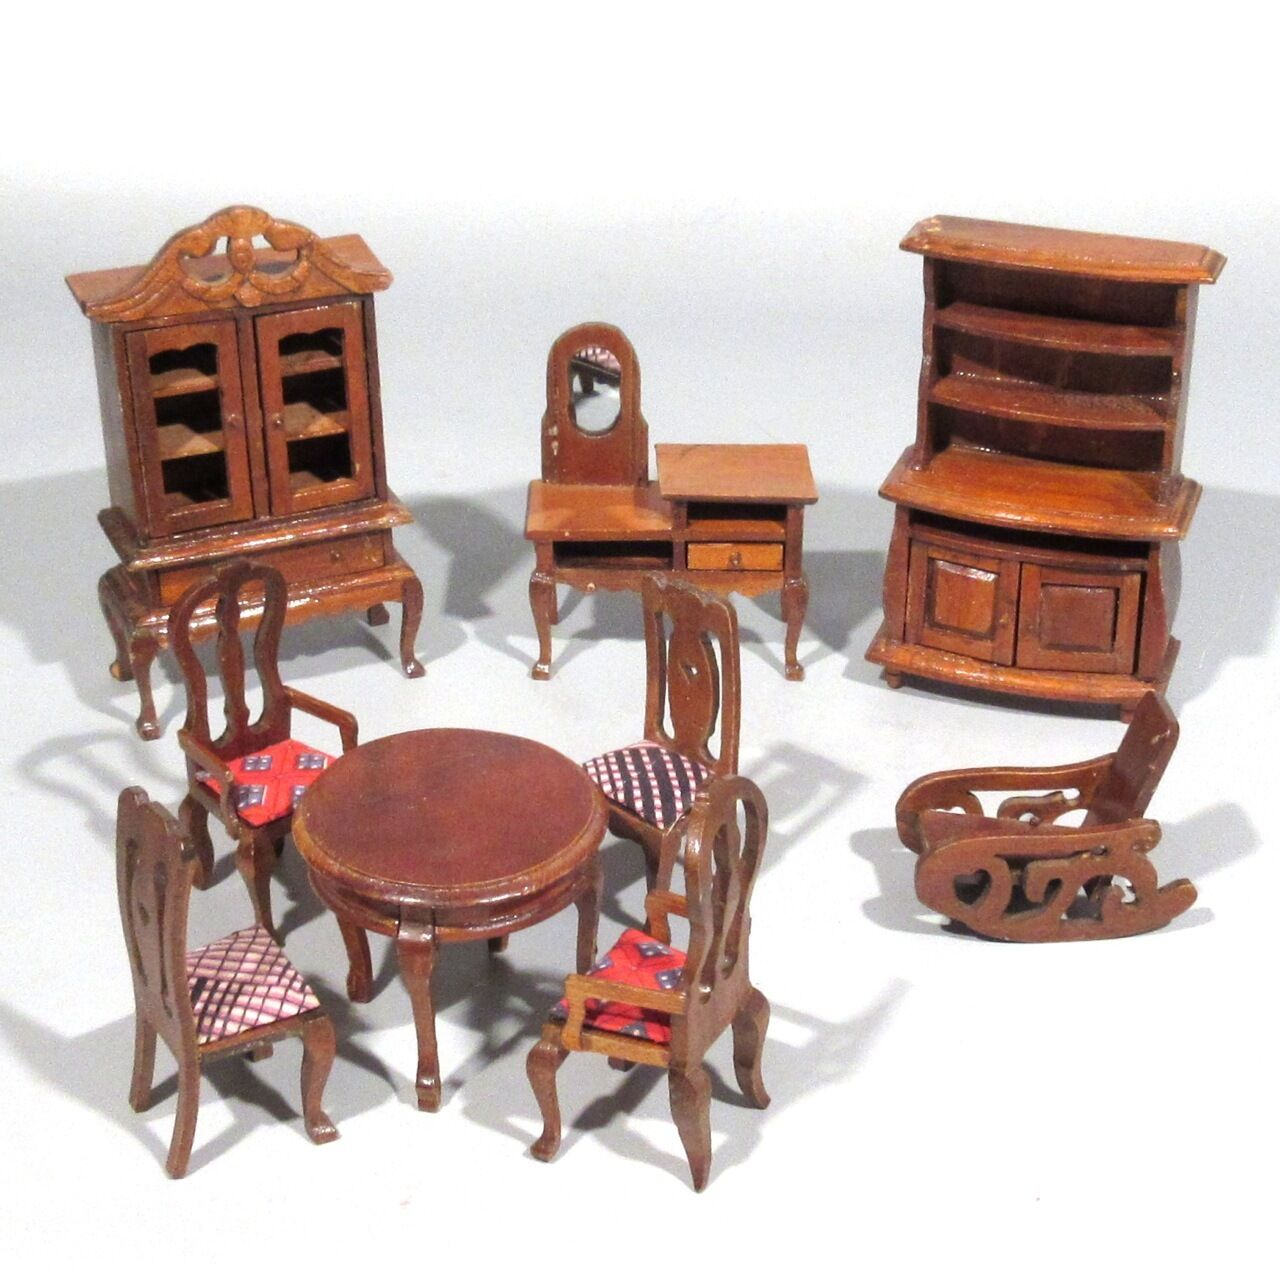 Vintage French Miniature Hand Carved Wooden Doll Furniture, 9 pcs